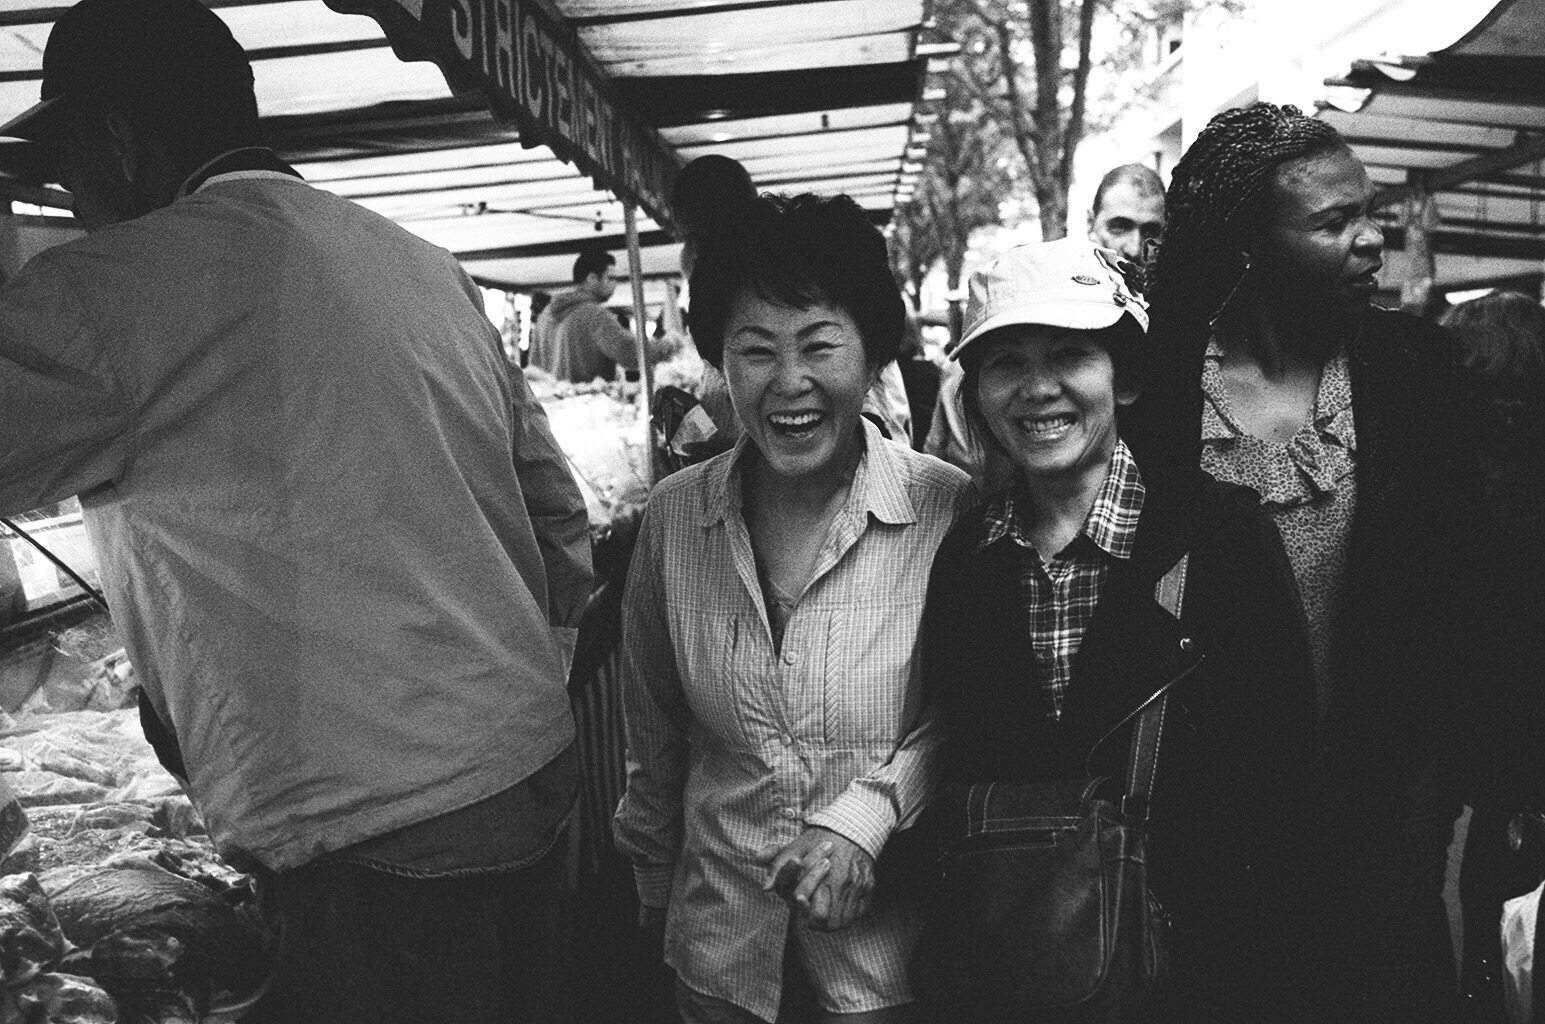 The joy my mom and Cindy's mom had going through the farmer's market in Paris for the first time